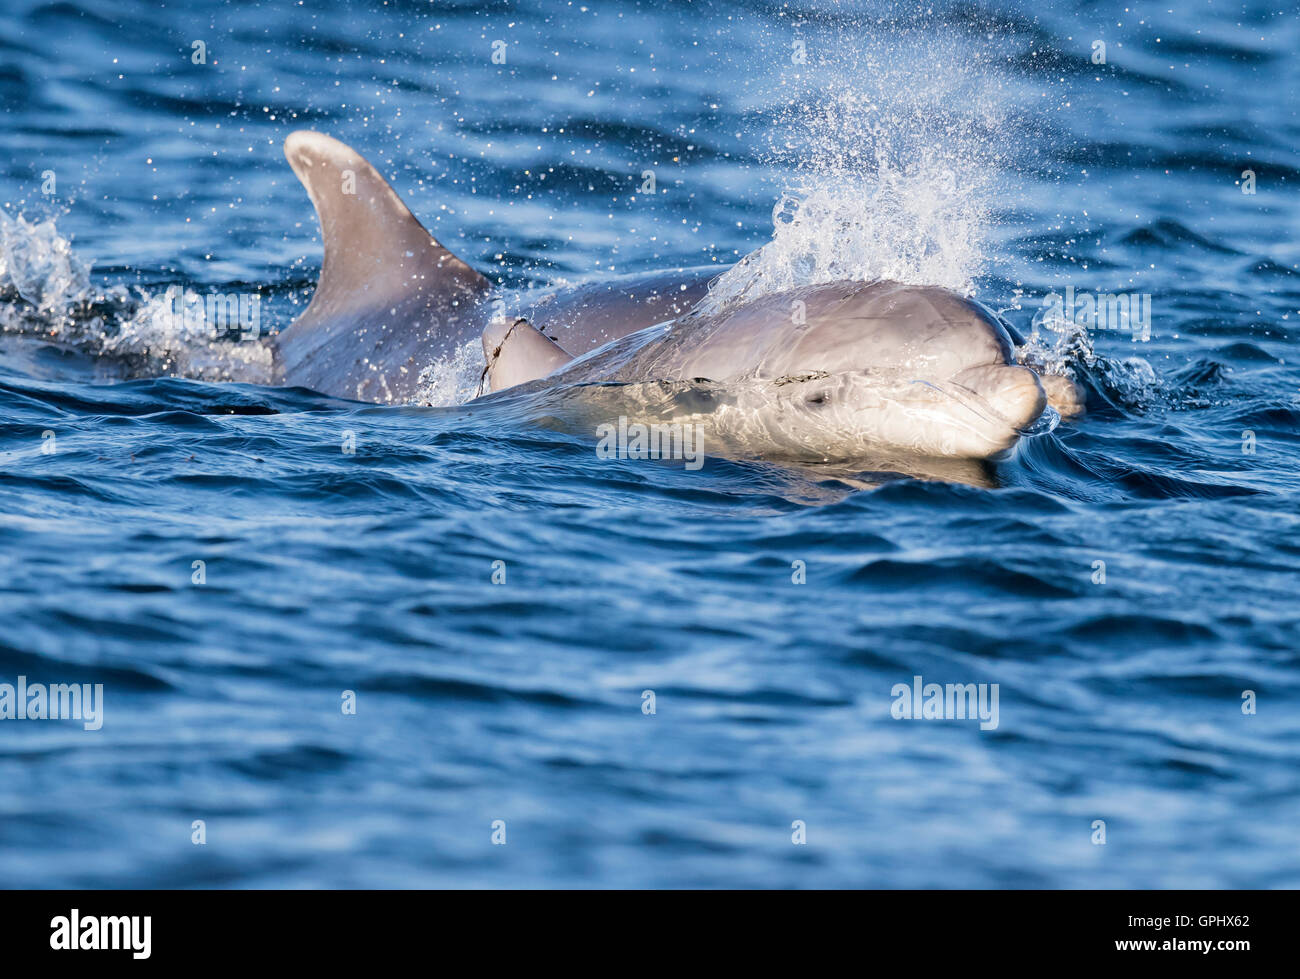 A Young Bottlenose Dolphin (Tursiops truncatus) and it's Mother staying close in the Moray Firth, Scotland - Stock Image